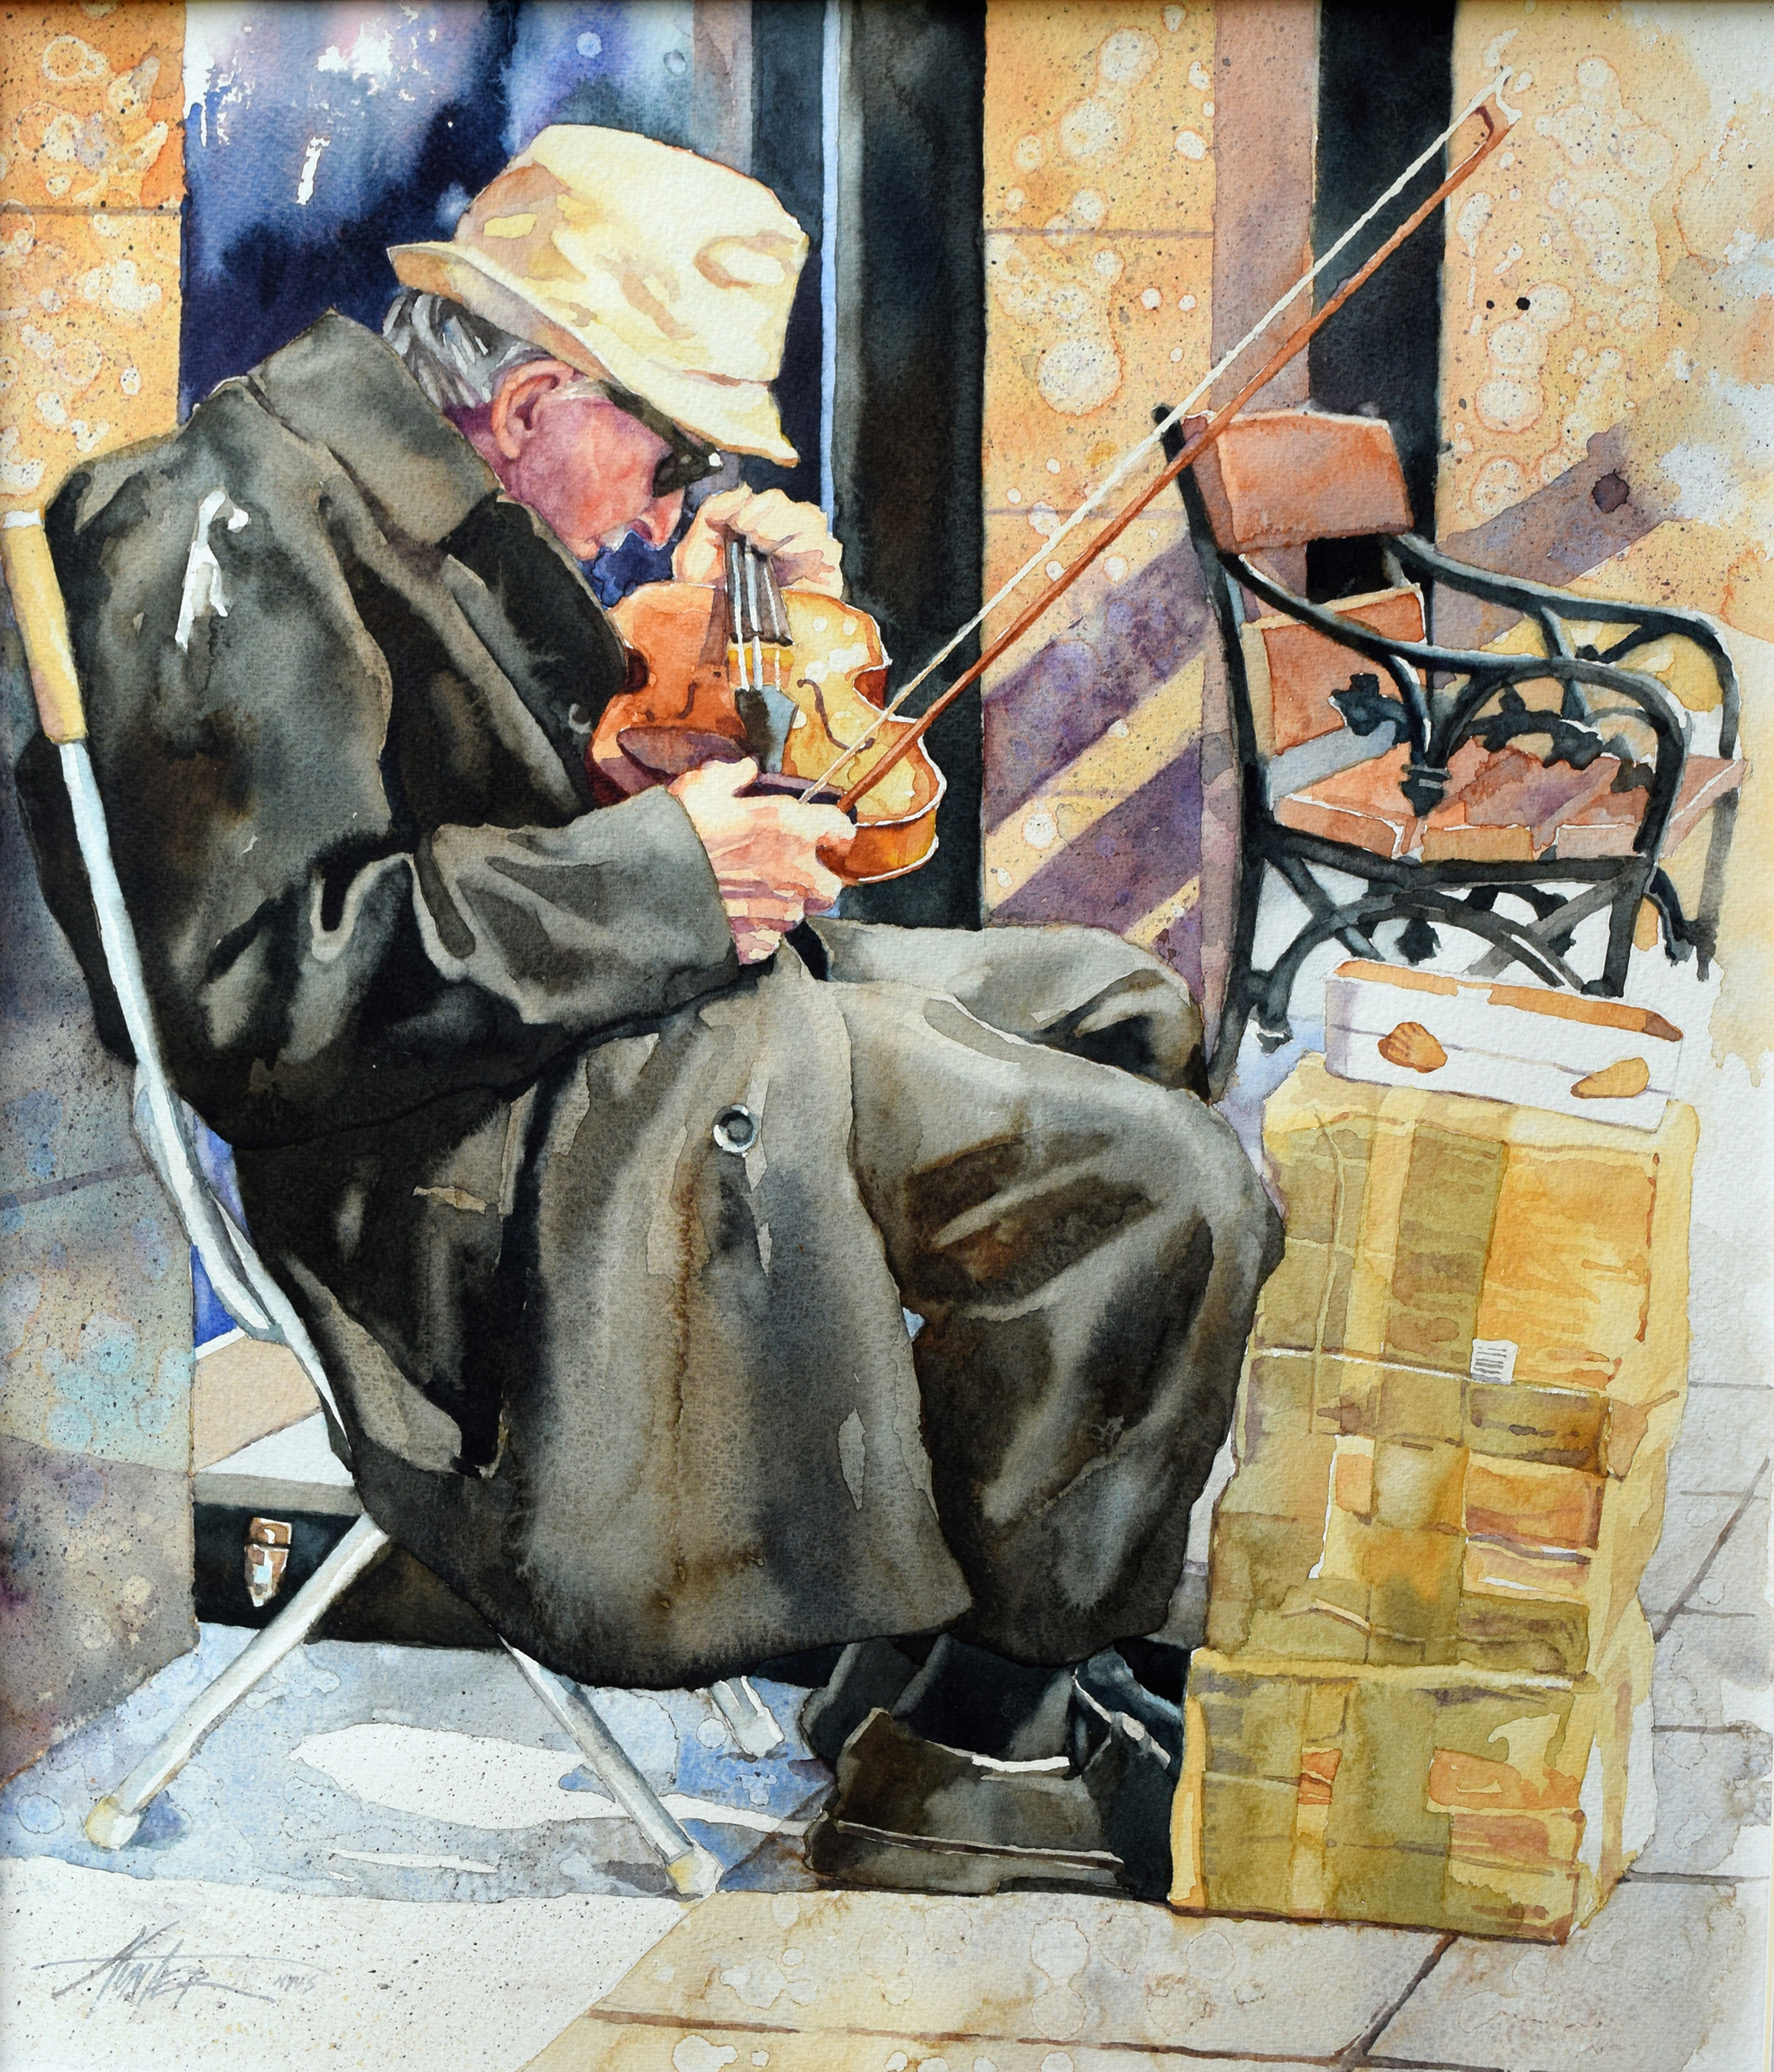 A Will to Play  received Best of Show honors in Aqueous 2016, the 70th International Exhibition of the Pittsburgh Watercolor Society from distinguished juror Gerald Brommer.